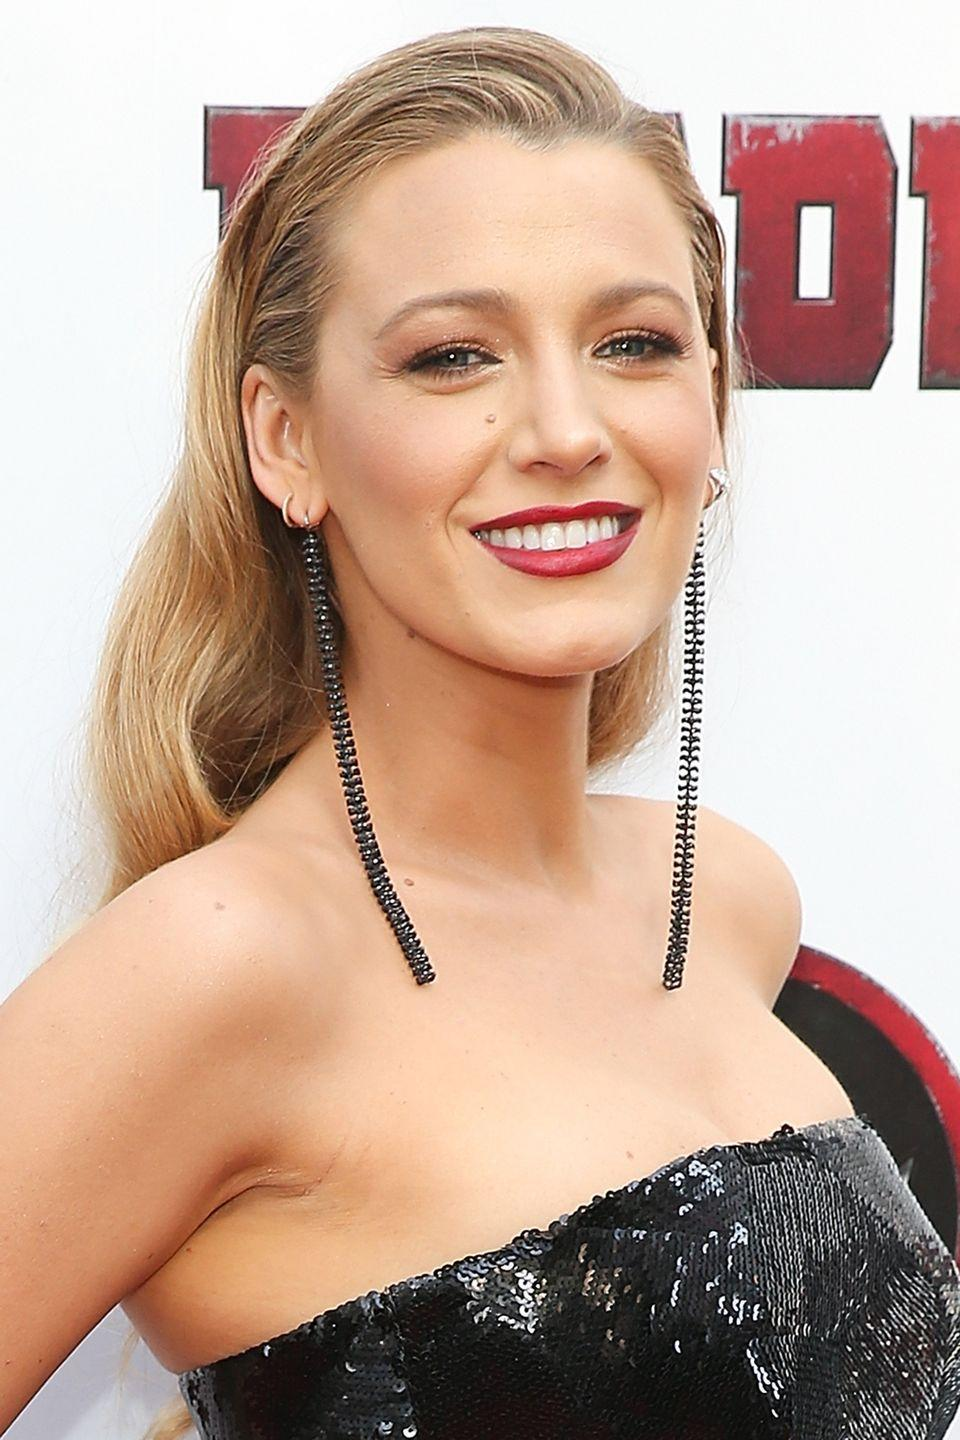 """<p>Copy Blake Lively's trick to keeping loose waves off your face by lightly slicking back your roots. Try L'Oreal Professionnel's <a href=""""https://www.lookfantastic.com/l-oreal-professionnel-tecni.art-pli-shaper-190ml/12049023.html"""" rel=""""nofollow noopener"""" target=""""_blank"""" data-ylk=""""slk:Techni Art Pli"""" class=""""link rapid-noclick-resp"""">Techni Art Pli</a>, £11.50.</p>"""